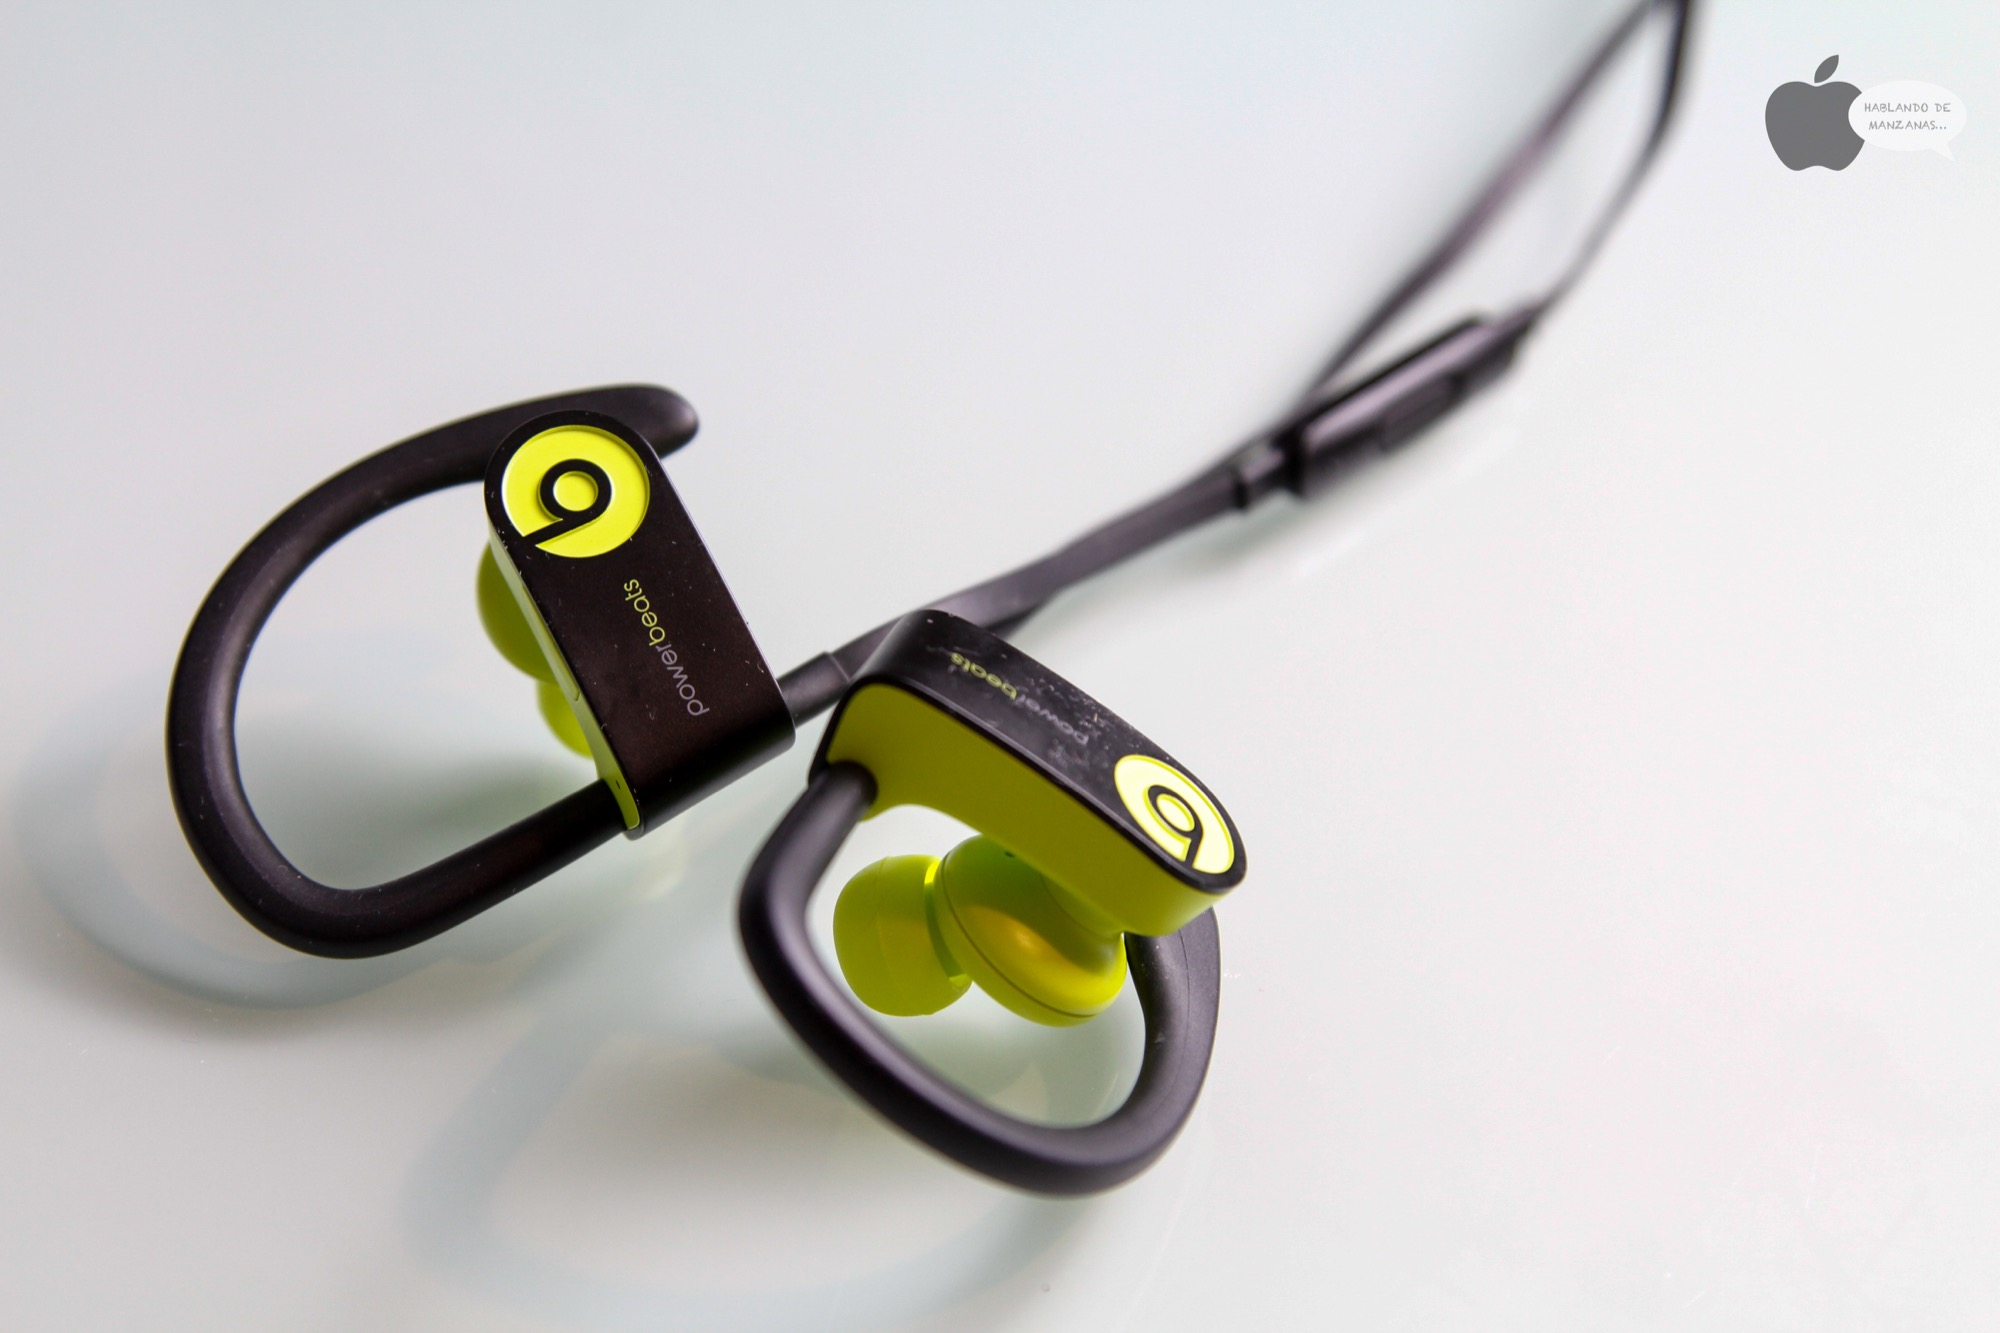 Beats Powerbeats 3 Wireless, modelo 2016. Análisis y opinión